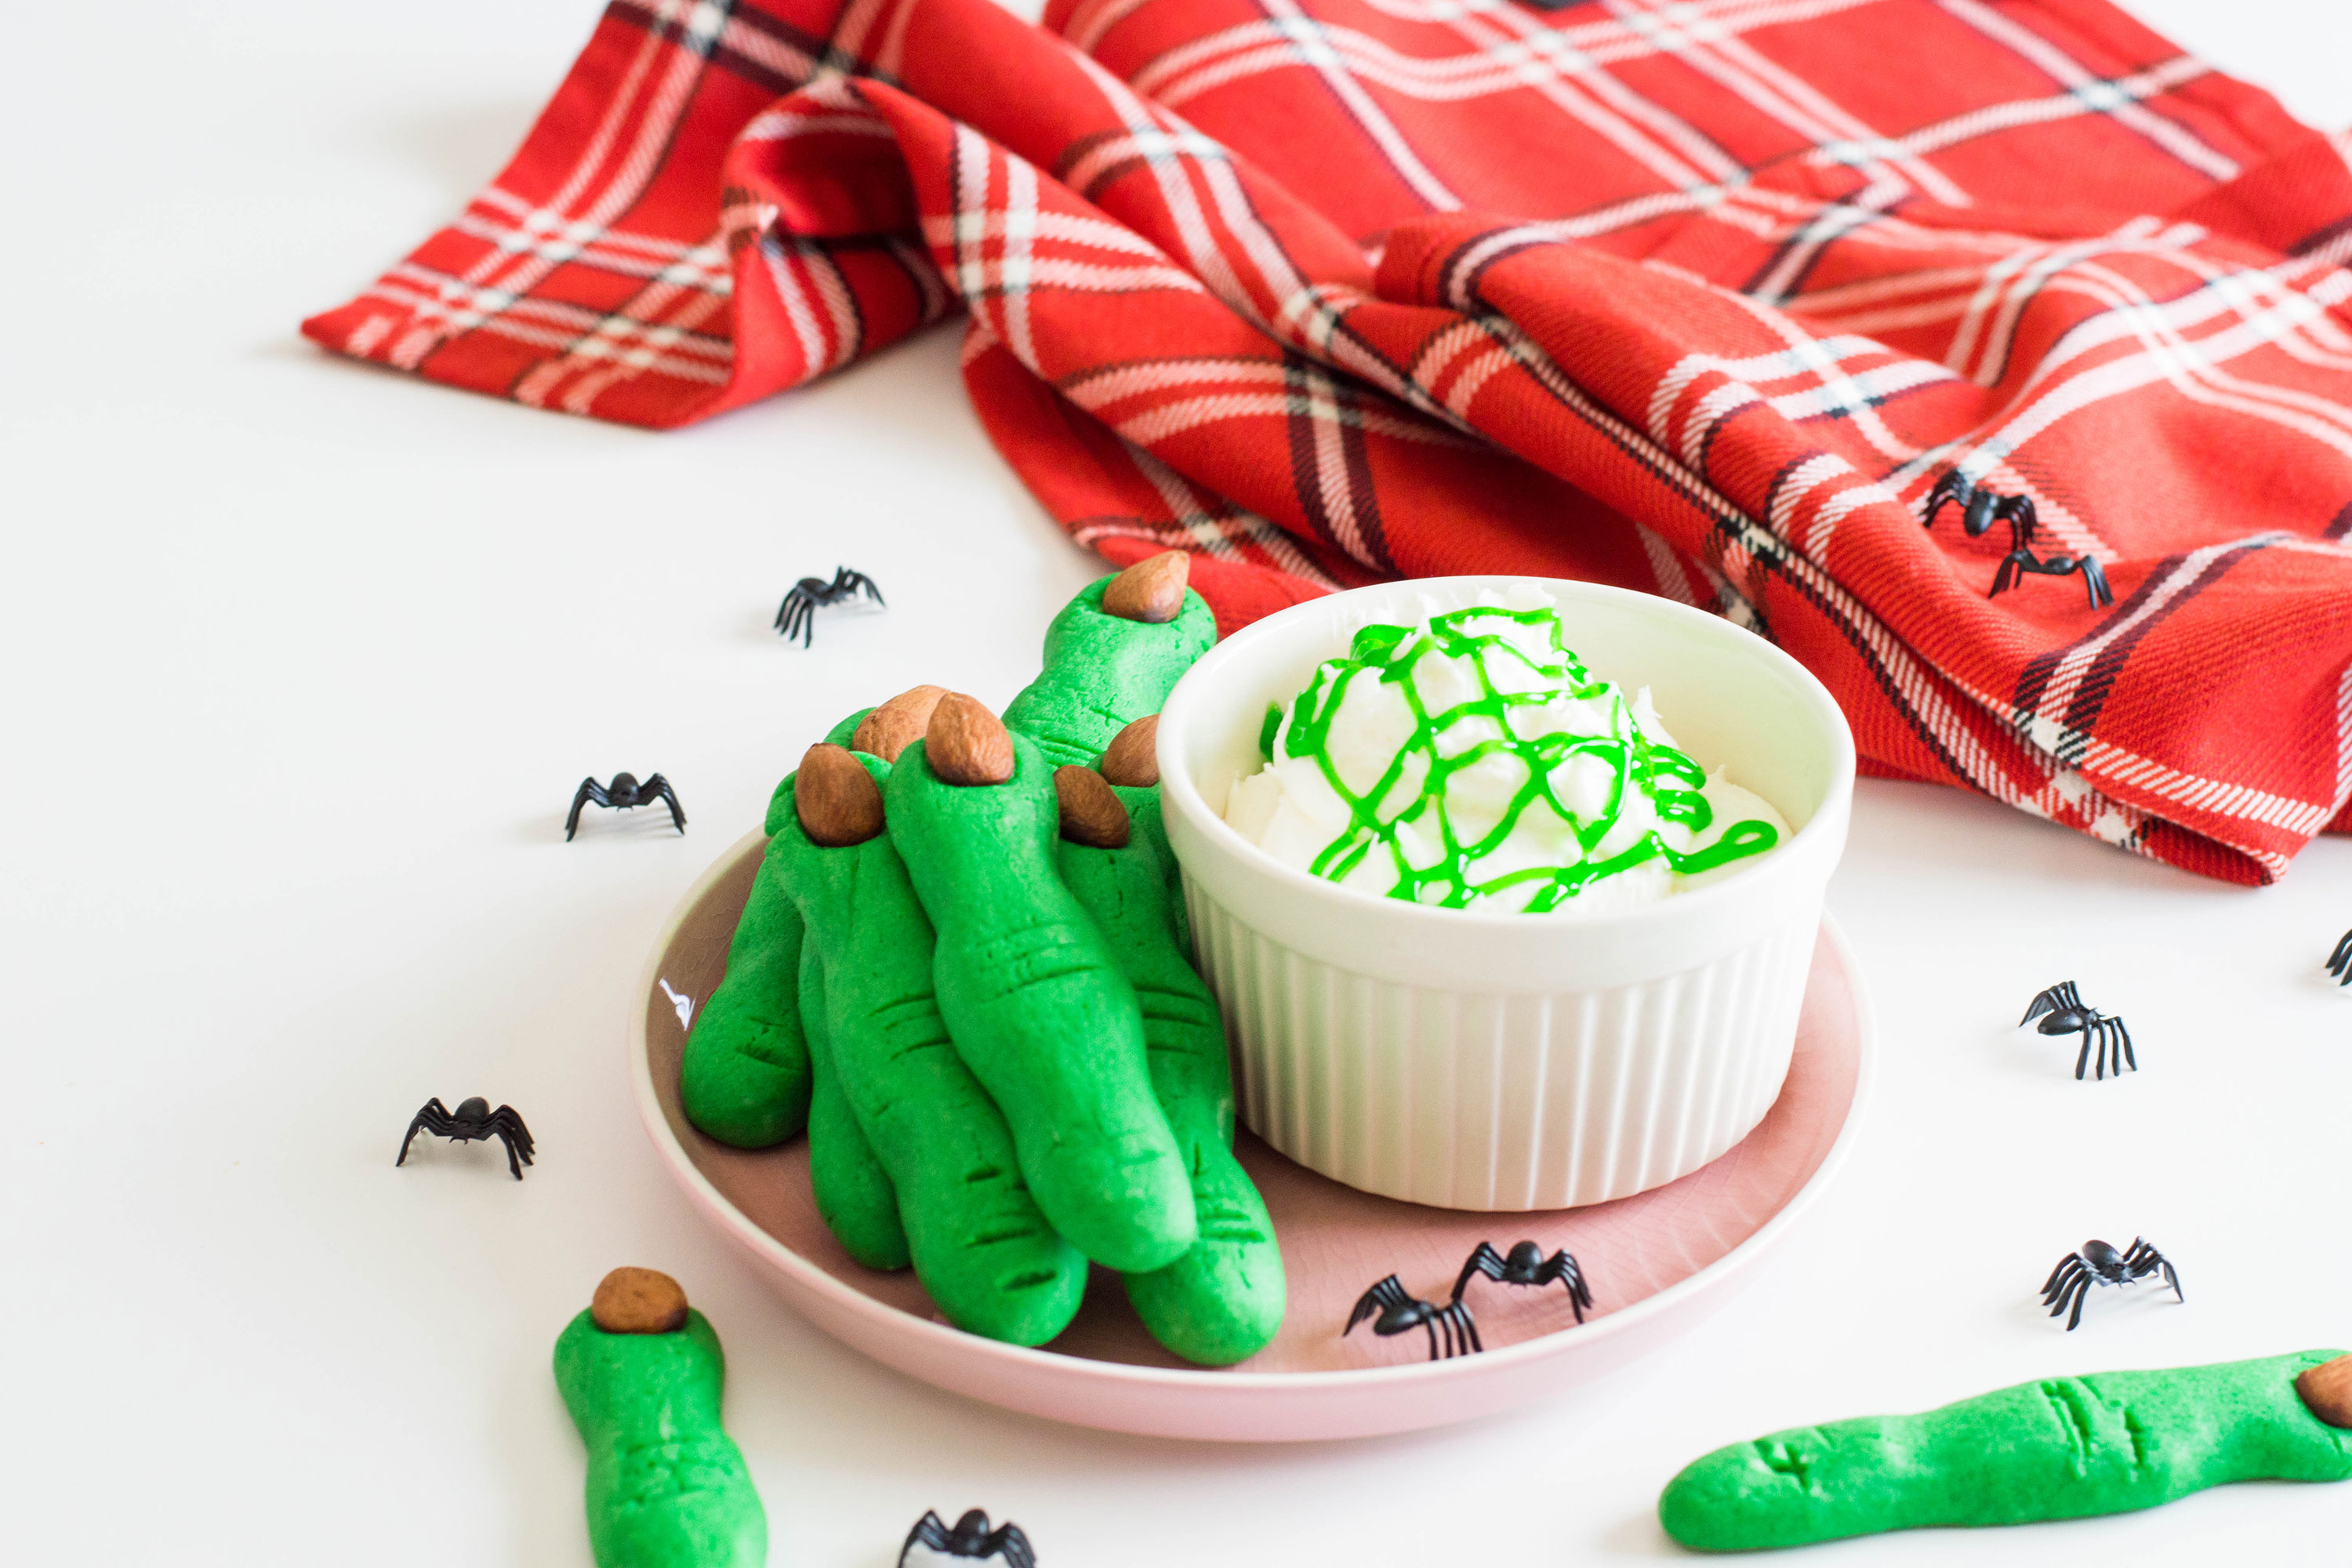 These Witch Finger Cookies are not for the faint of heart - add the extra 'creep factor' in your upcoming Halloween party with these super green treats! #halloweendesserts